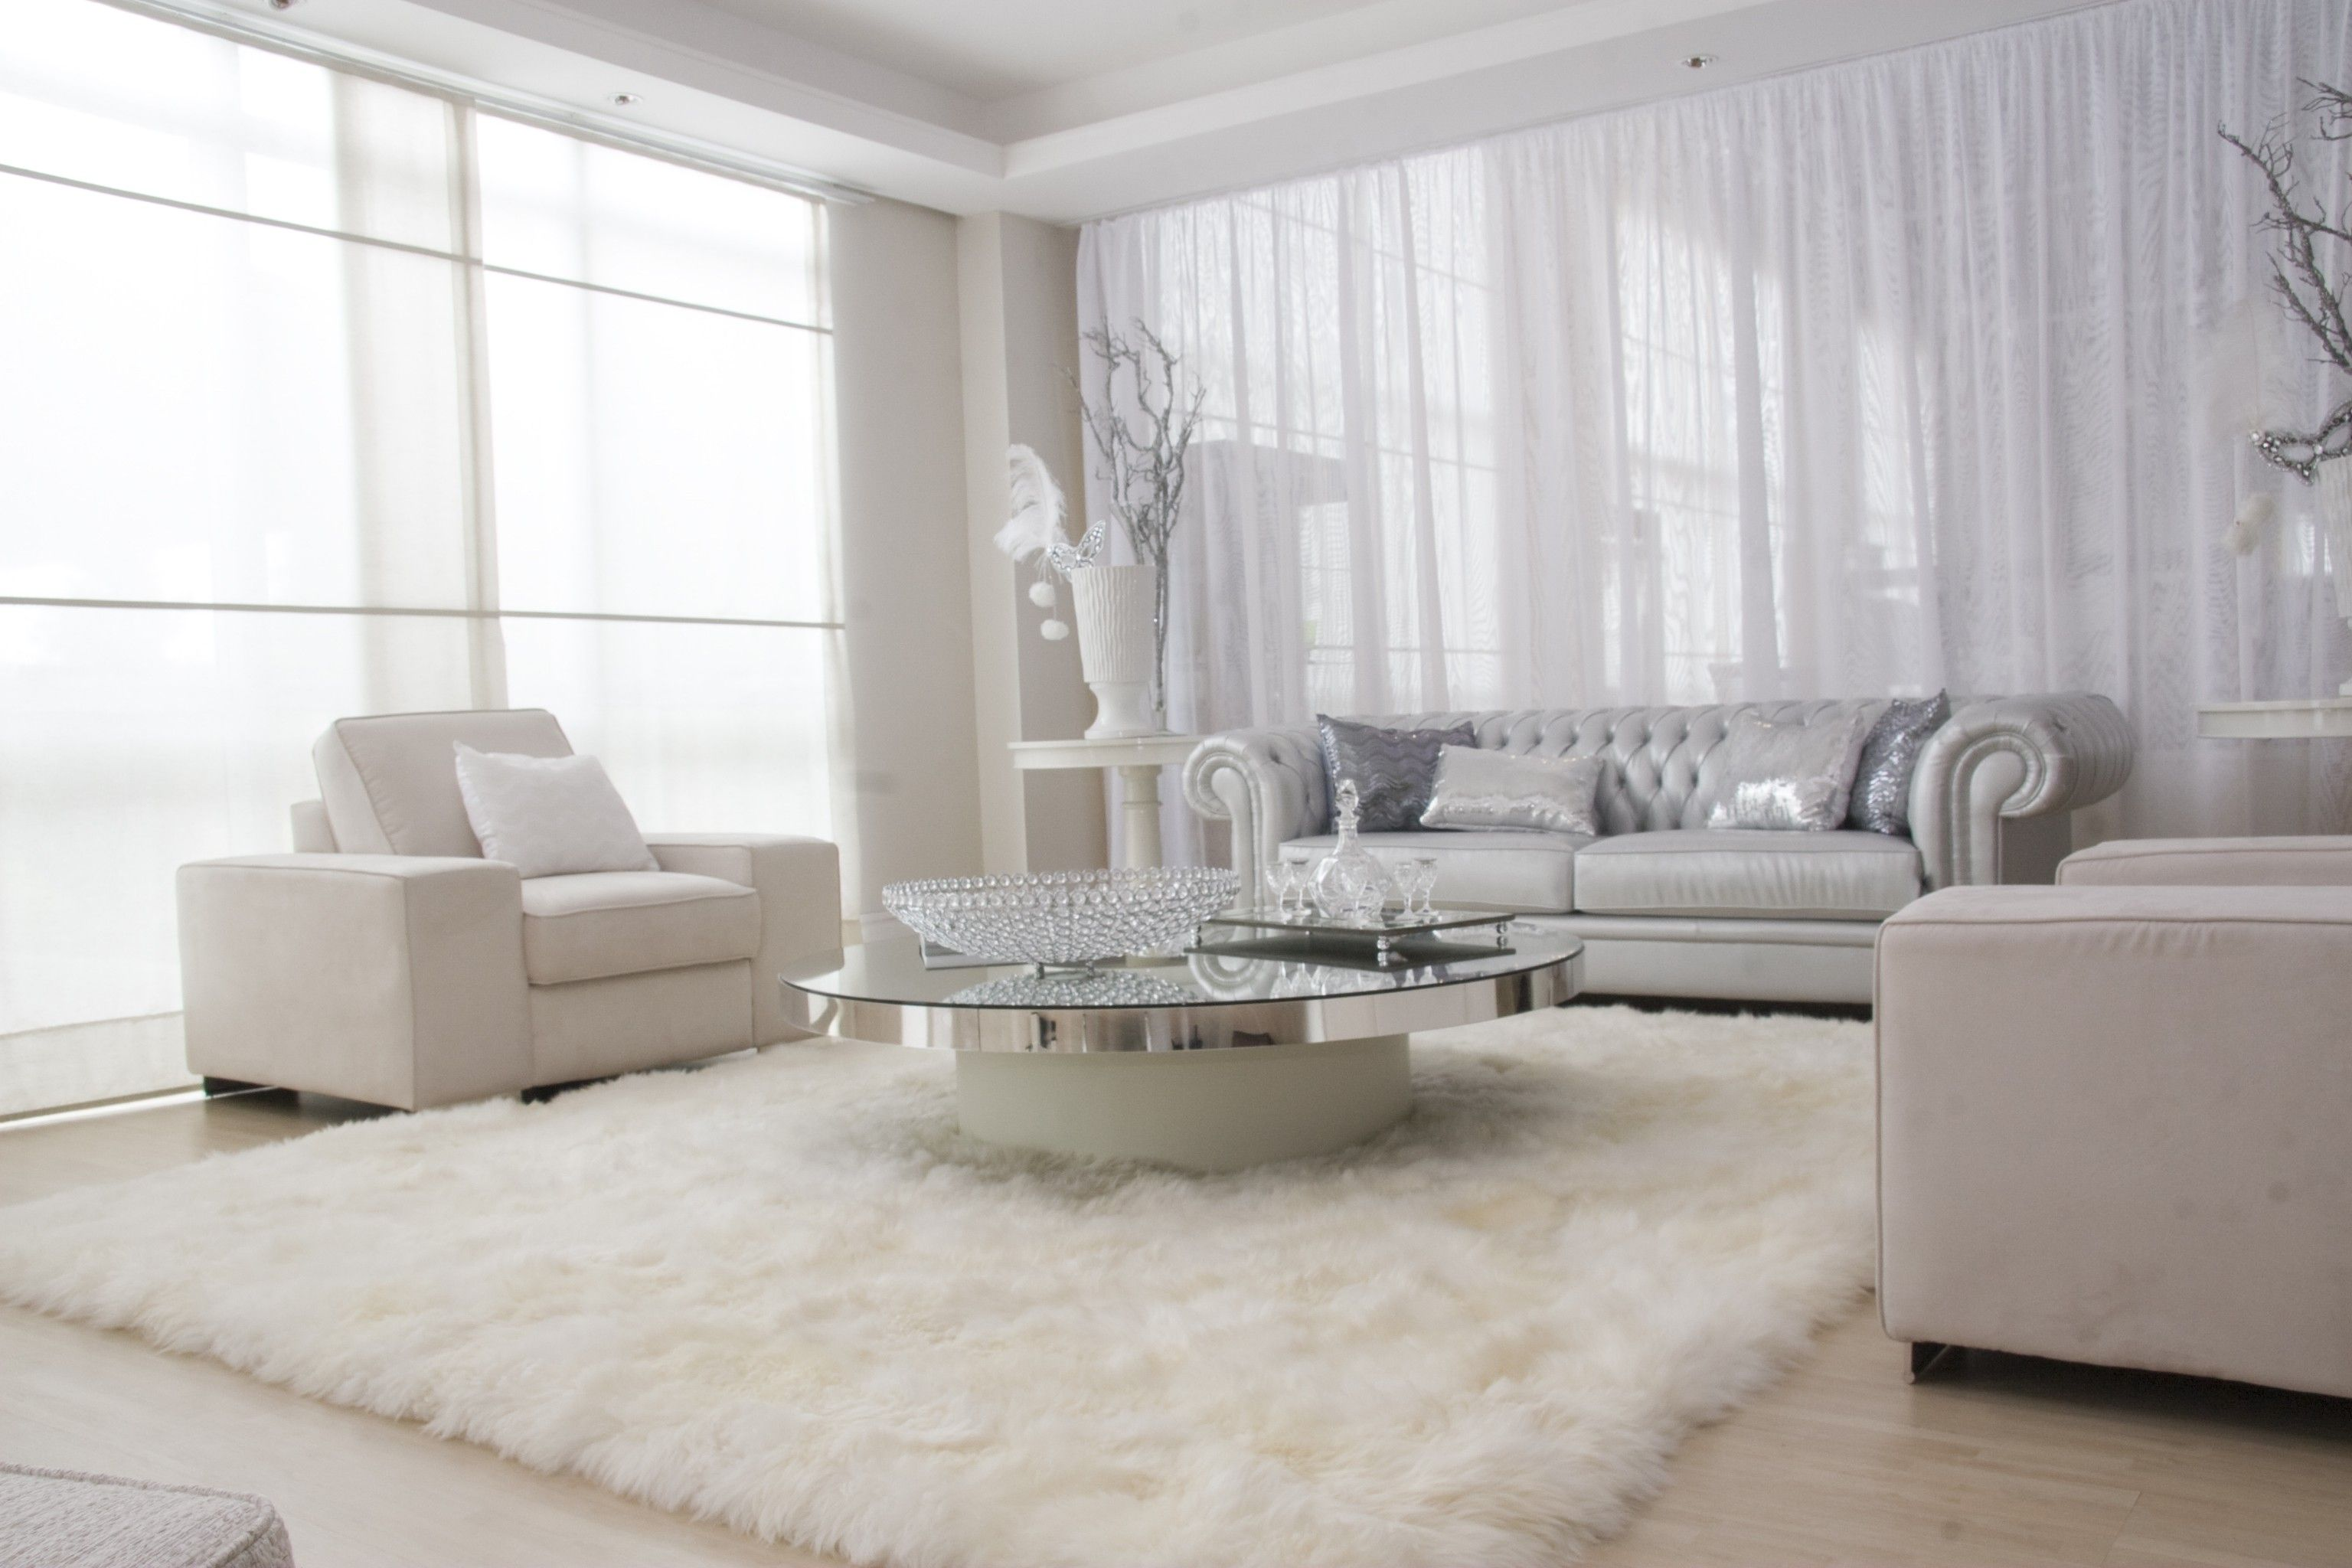 Ottoman Coffee Table And Glamorous White Fur Rug Mixed Gray Faux Leather Tufted Sofa Also Oversized Coffee Tables Of Adorable Glass C Voor Het Huis Huis Design [ 2048 x 3072 Pixel ]